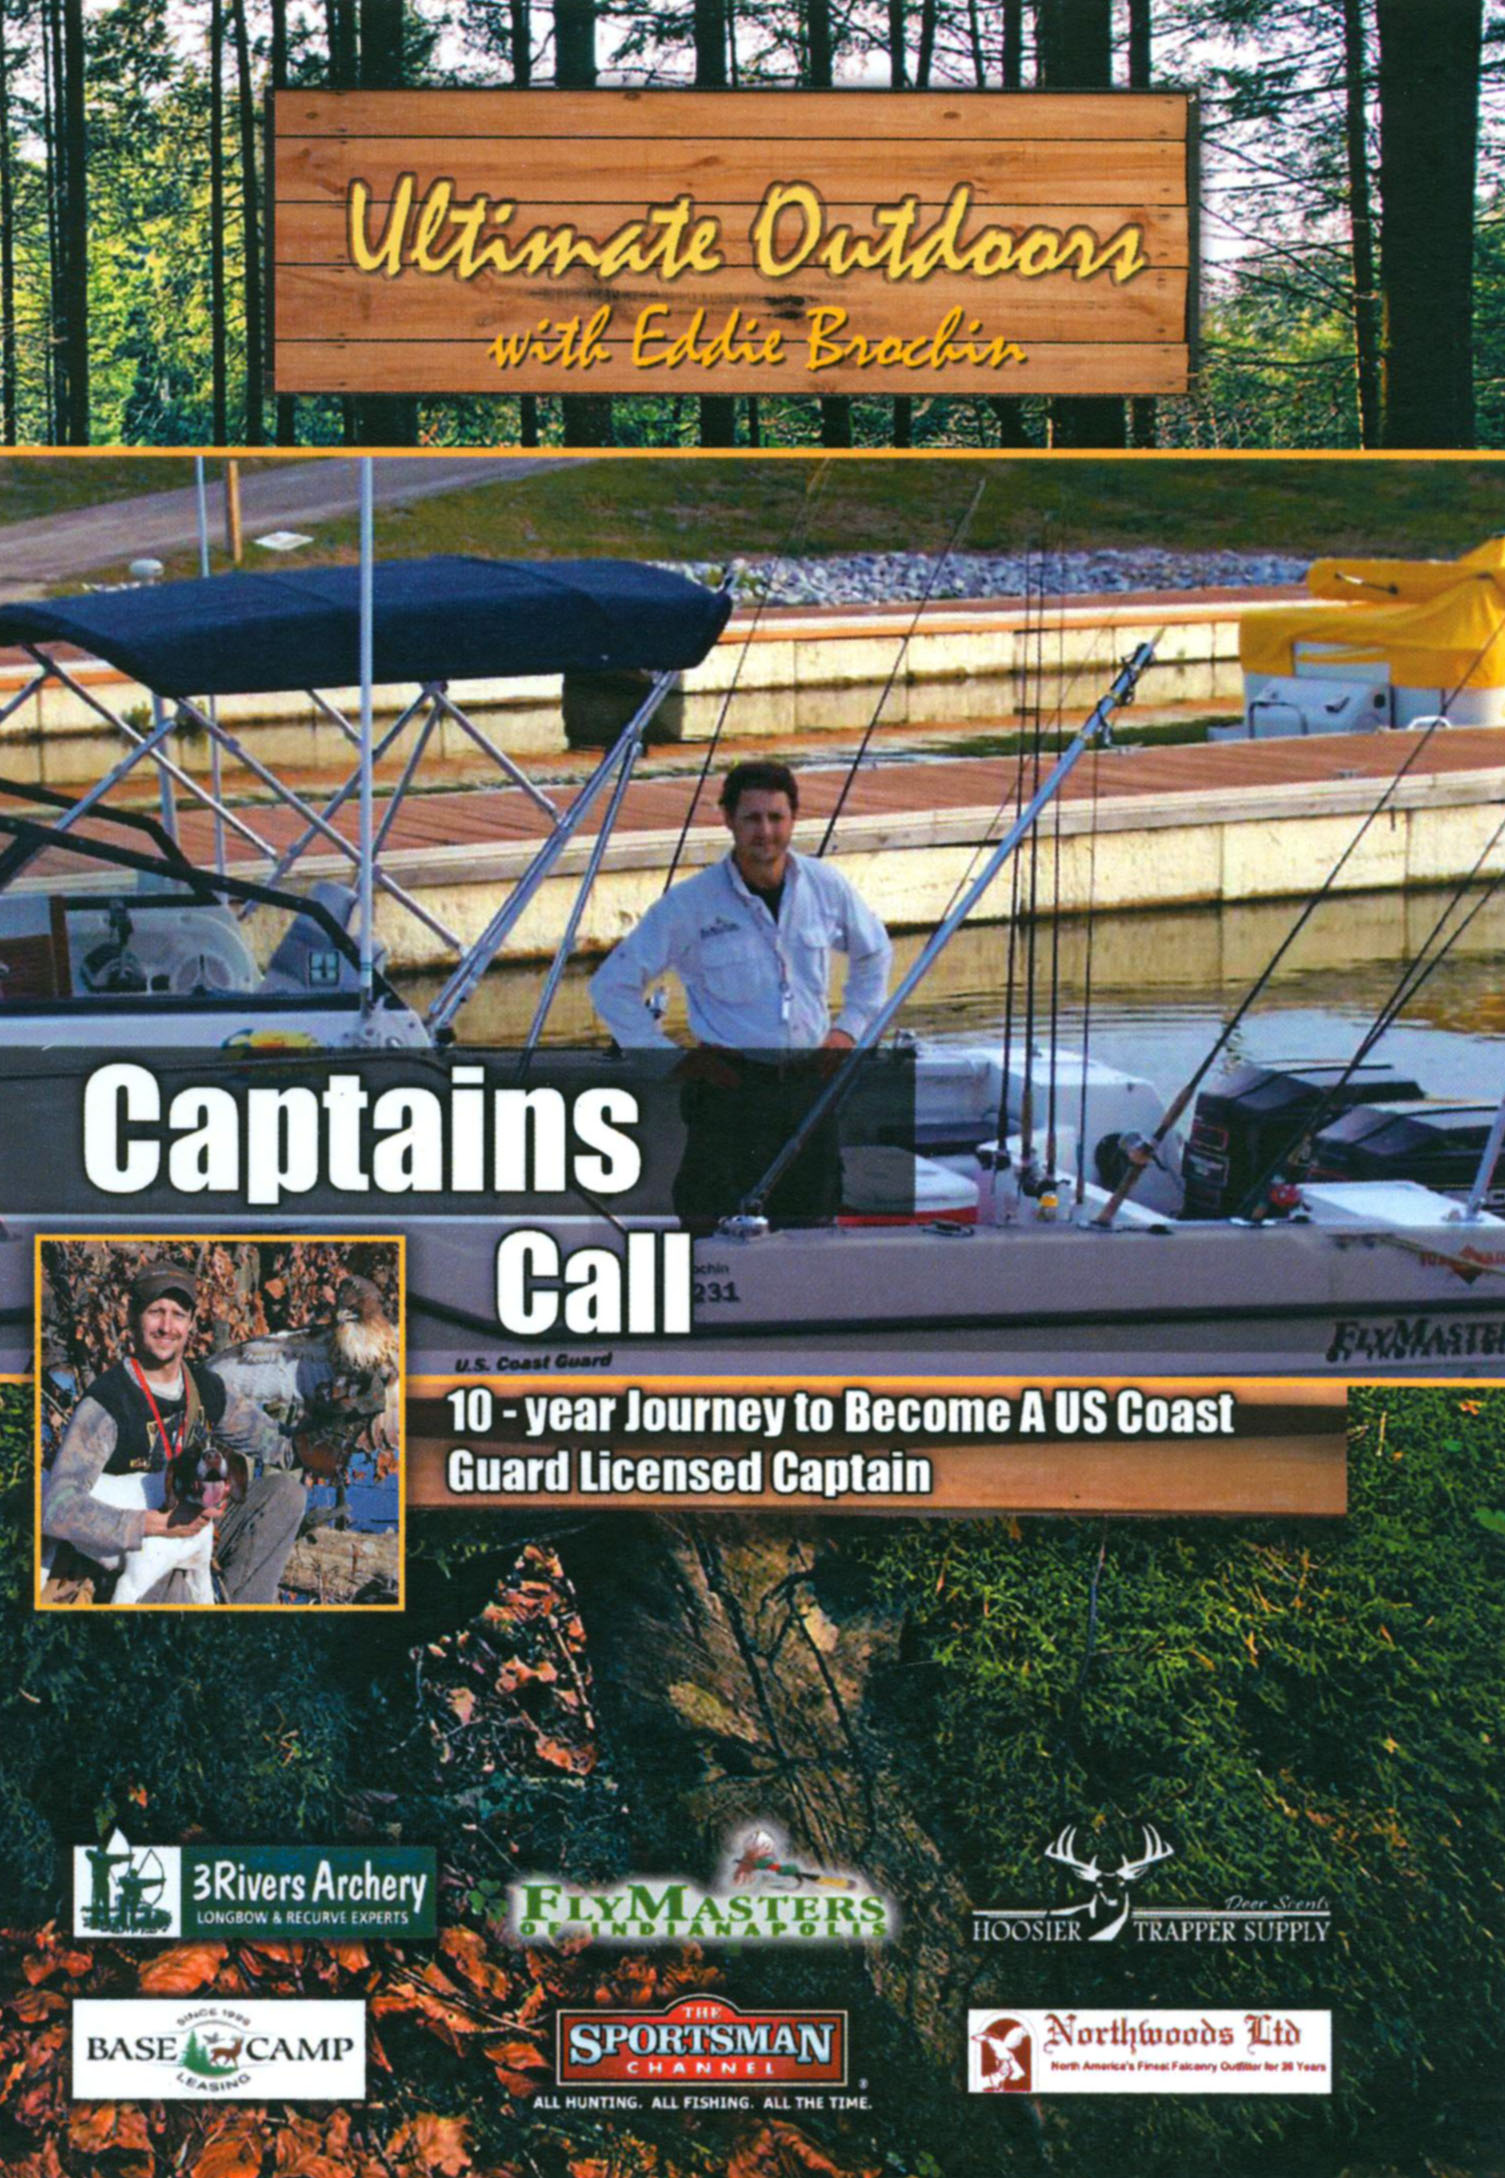 Ultimate Outdoors With Eddie Brochin: Captains Call